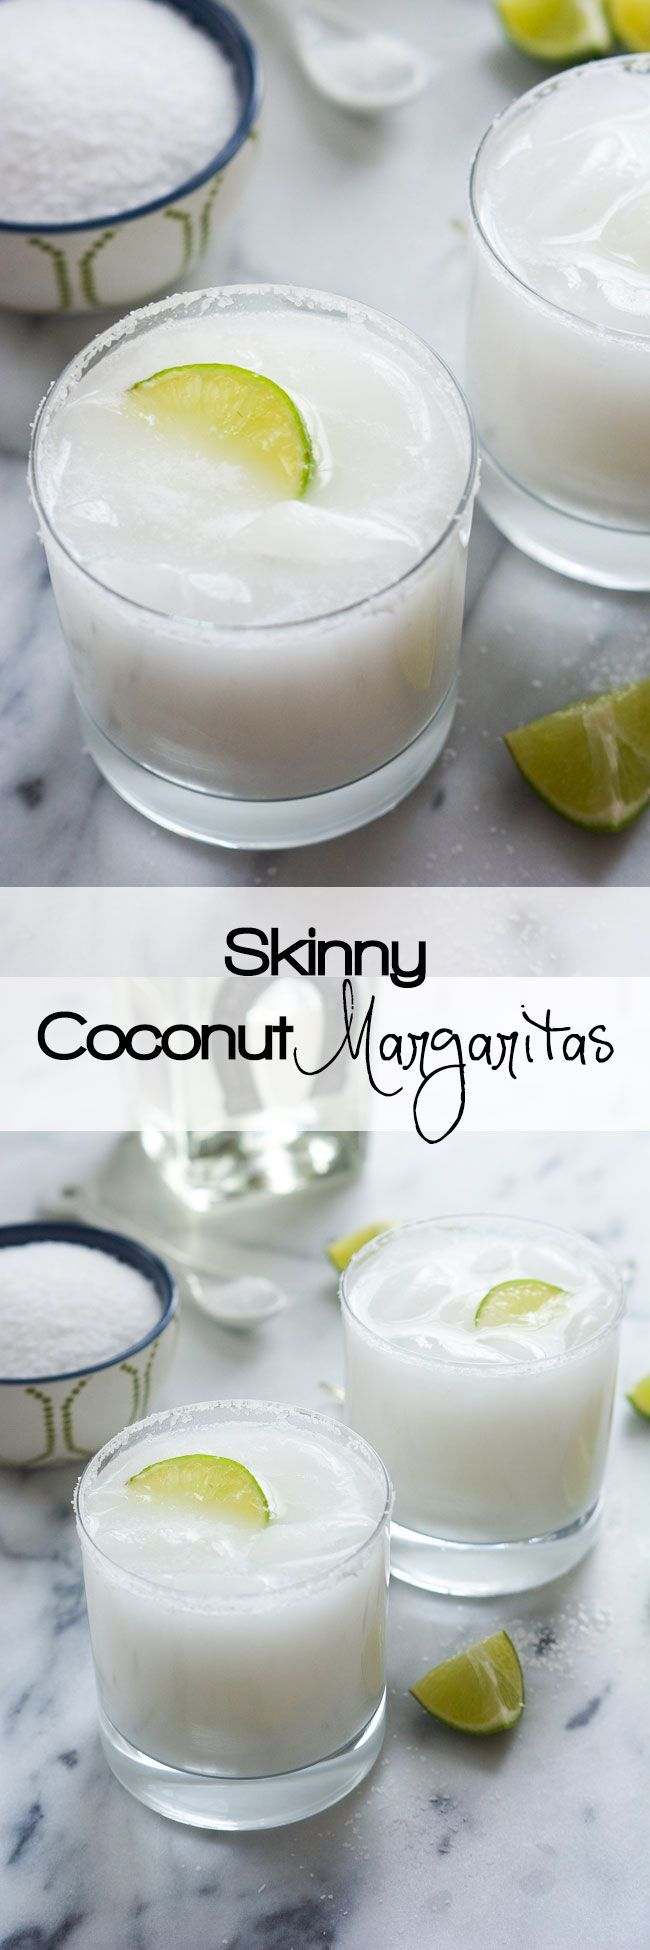 (withsaltandwit.com) A tropical spin on the classic drink! These Skinny Coconut Margarita are made with lite coconut milk, coconut water, tequila blanco and triple sec for a refreshing cocktail!